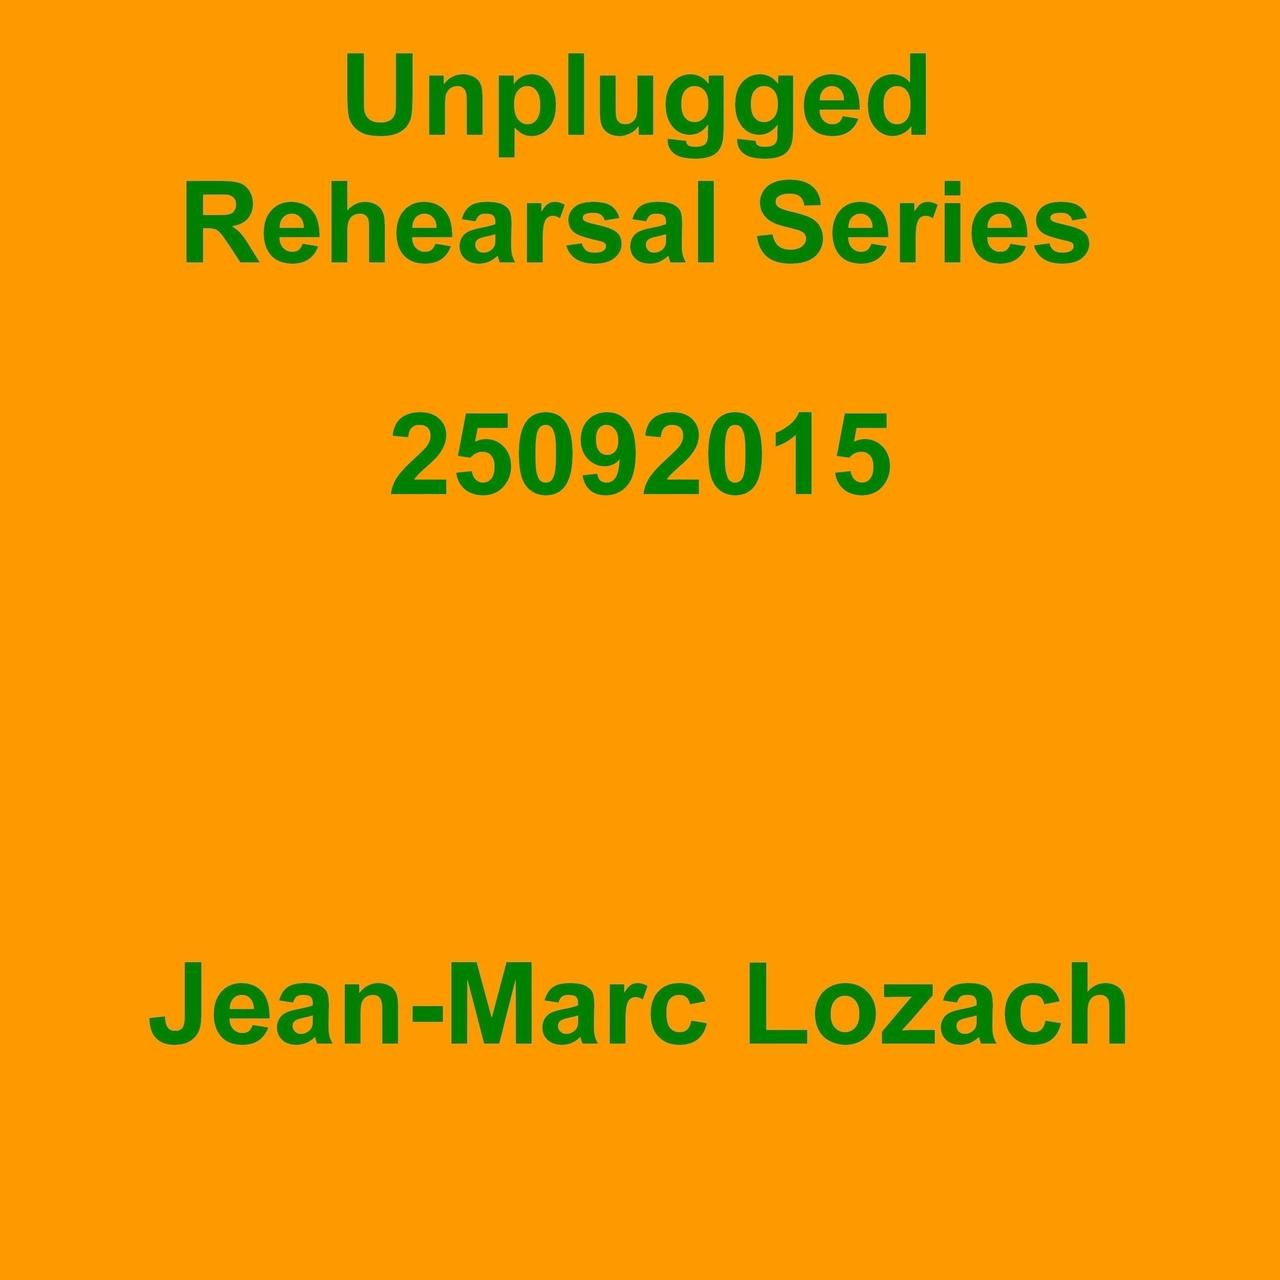 Unplugged Rehearsal Series 25092015